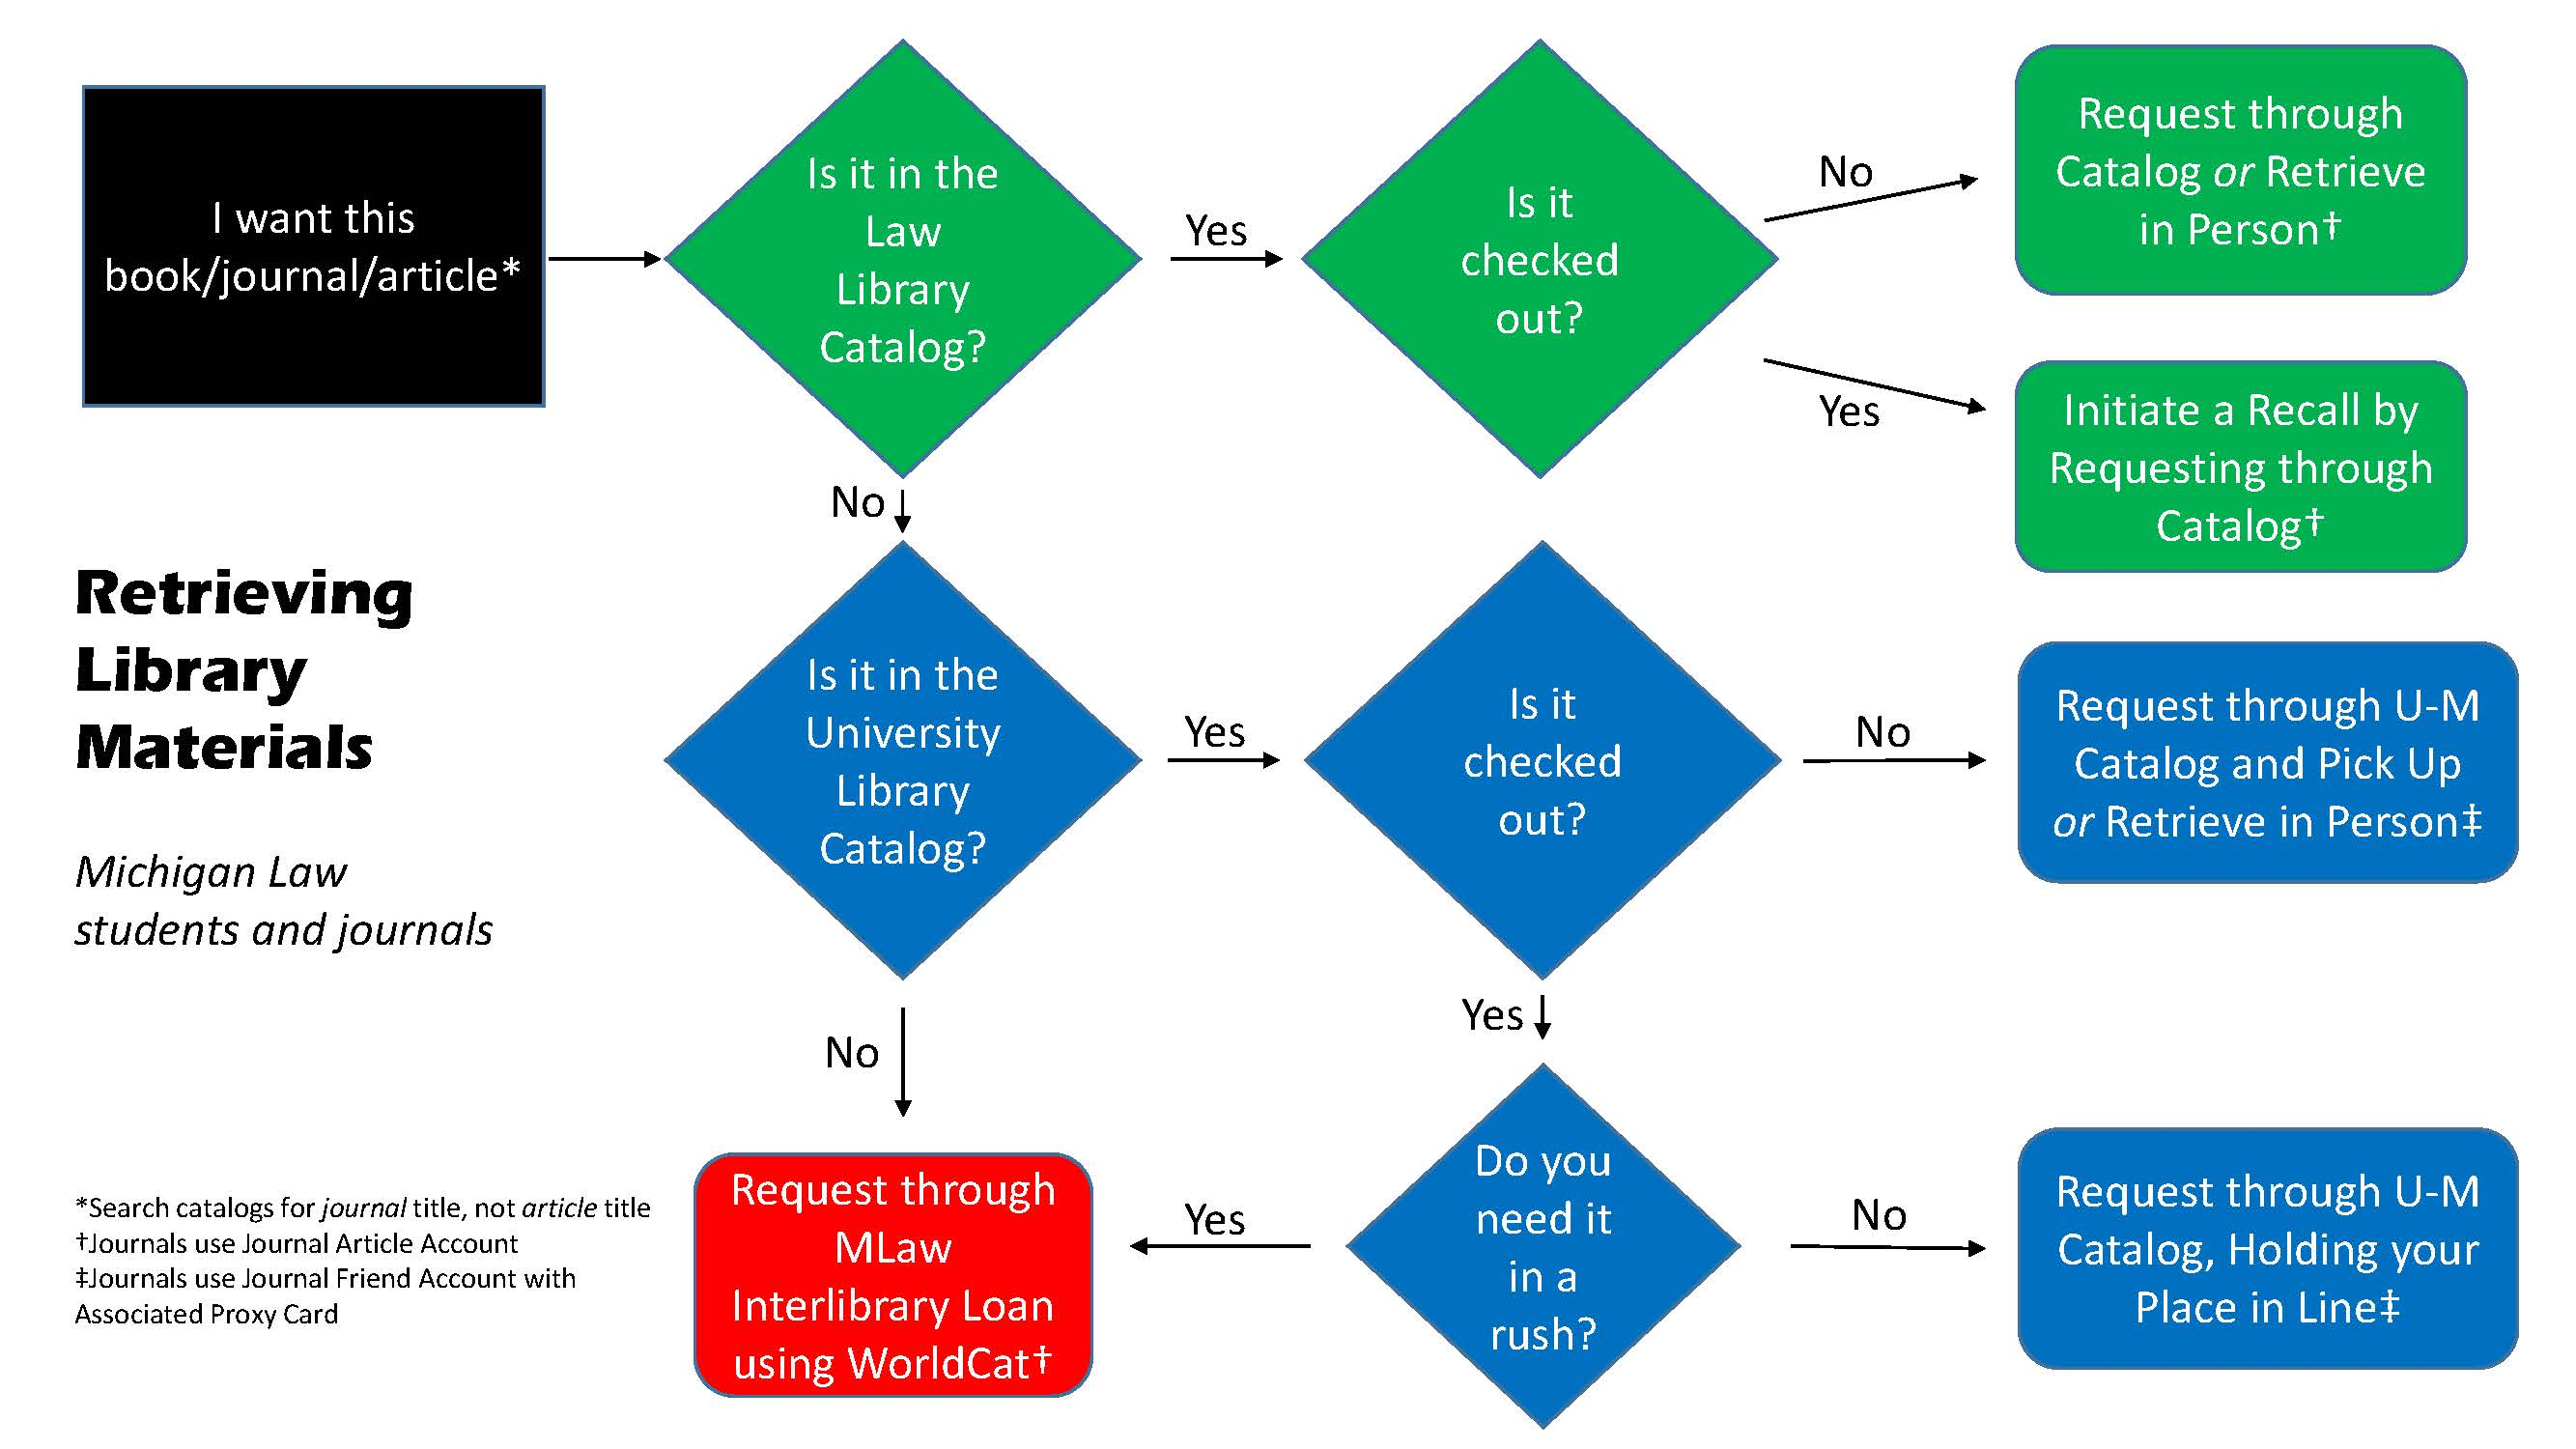 Flowchart showing how to go through campus catalogs to locate materials